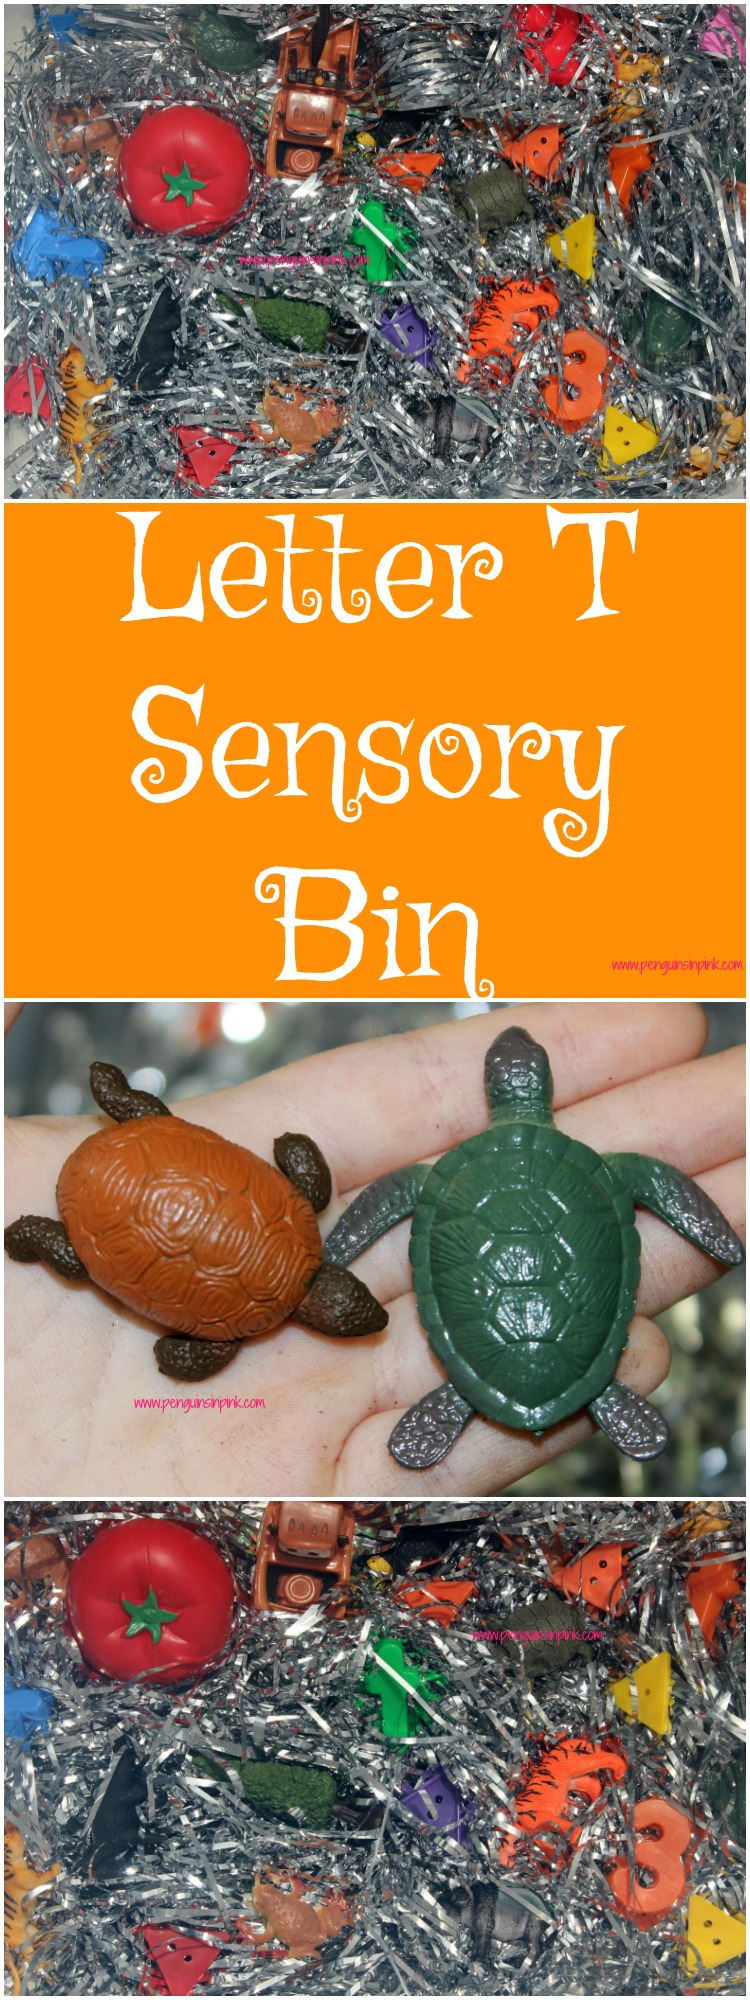 "Letter T Sensory Bin - This tinsel based sensory bin has it all tigers, triangles, toads, and other items beginning with the letter ""T""."